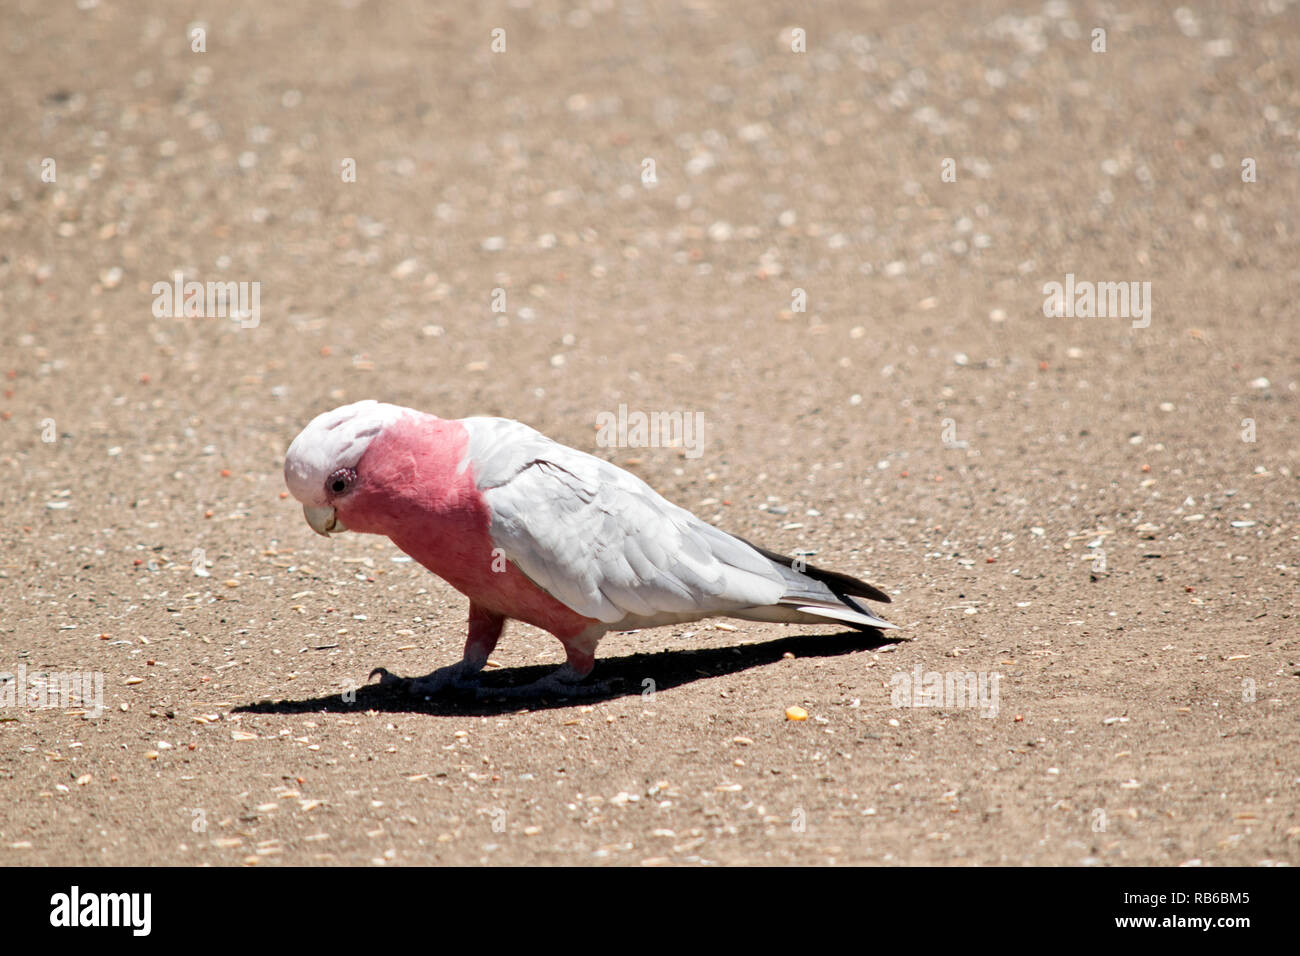 the galah is eating seeds off the ground - Stock Image